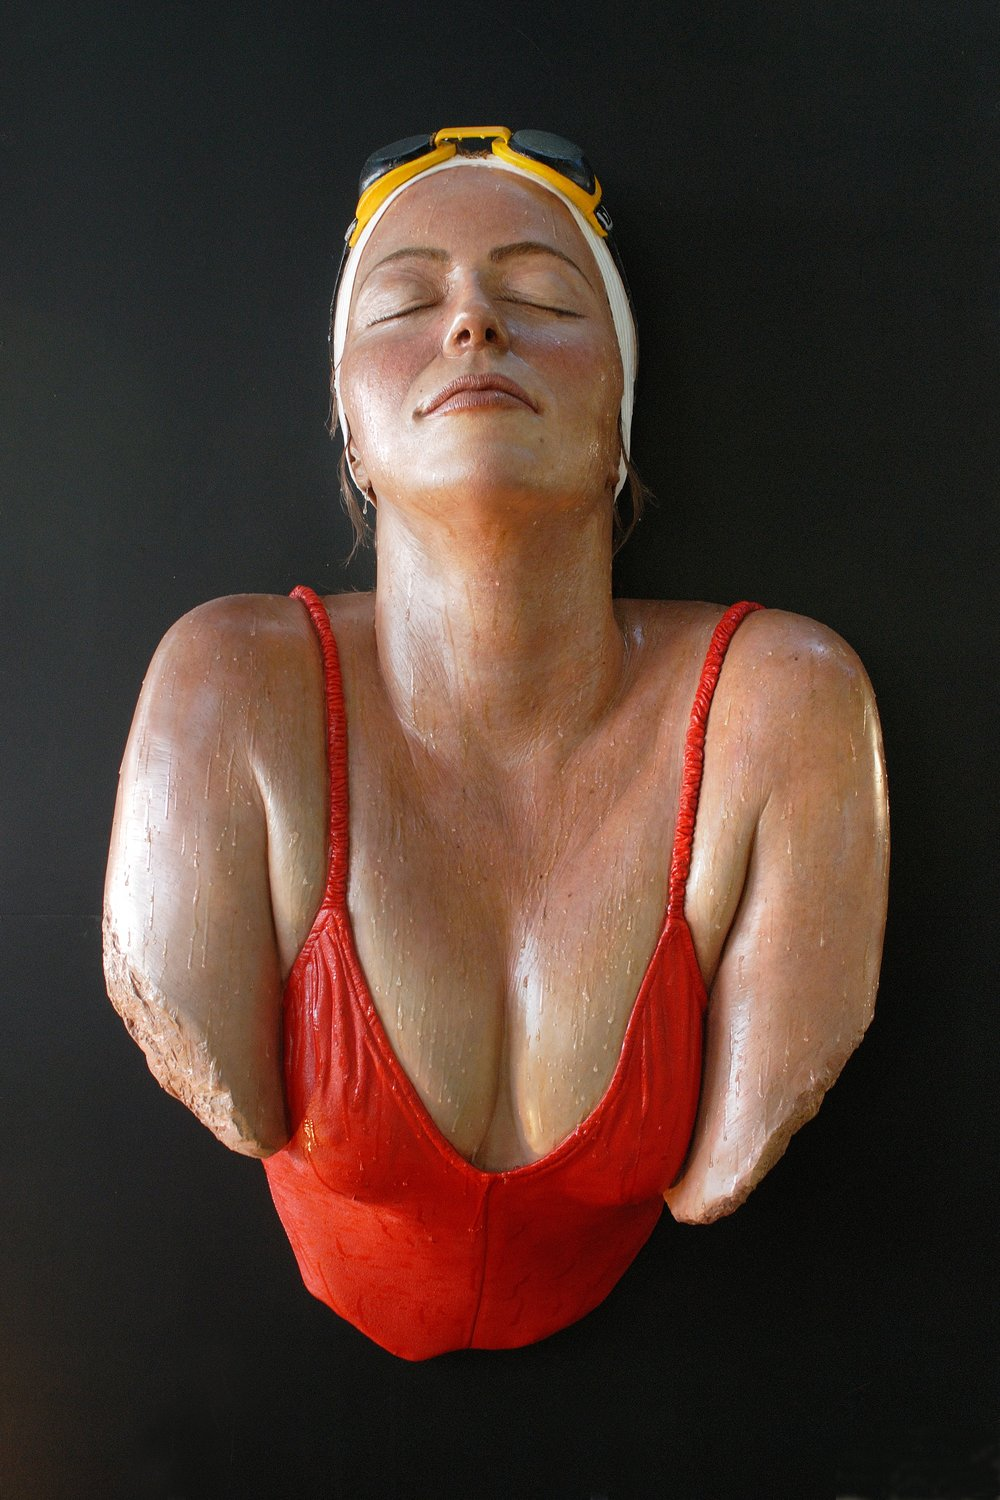 "Grande Catalina, 2005, Venissa Burano, Italy, Patinated Resin, 2005, 62"" x 38"" x 17"""